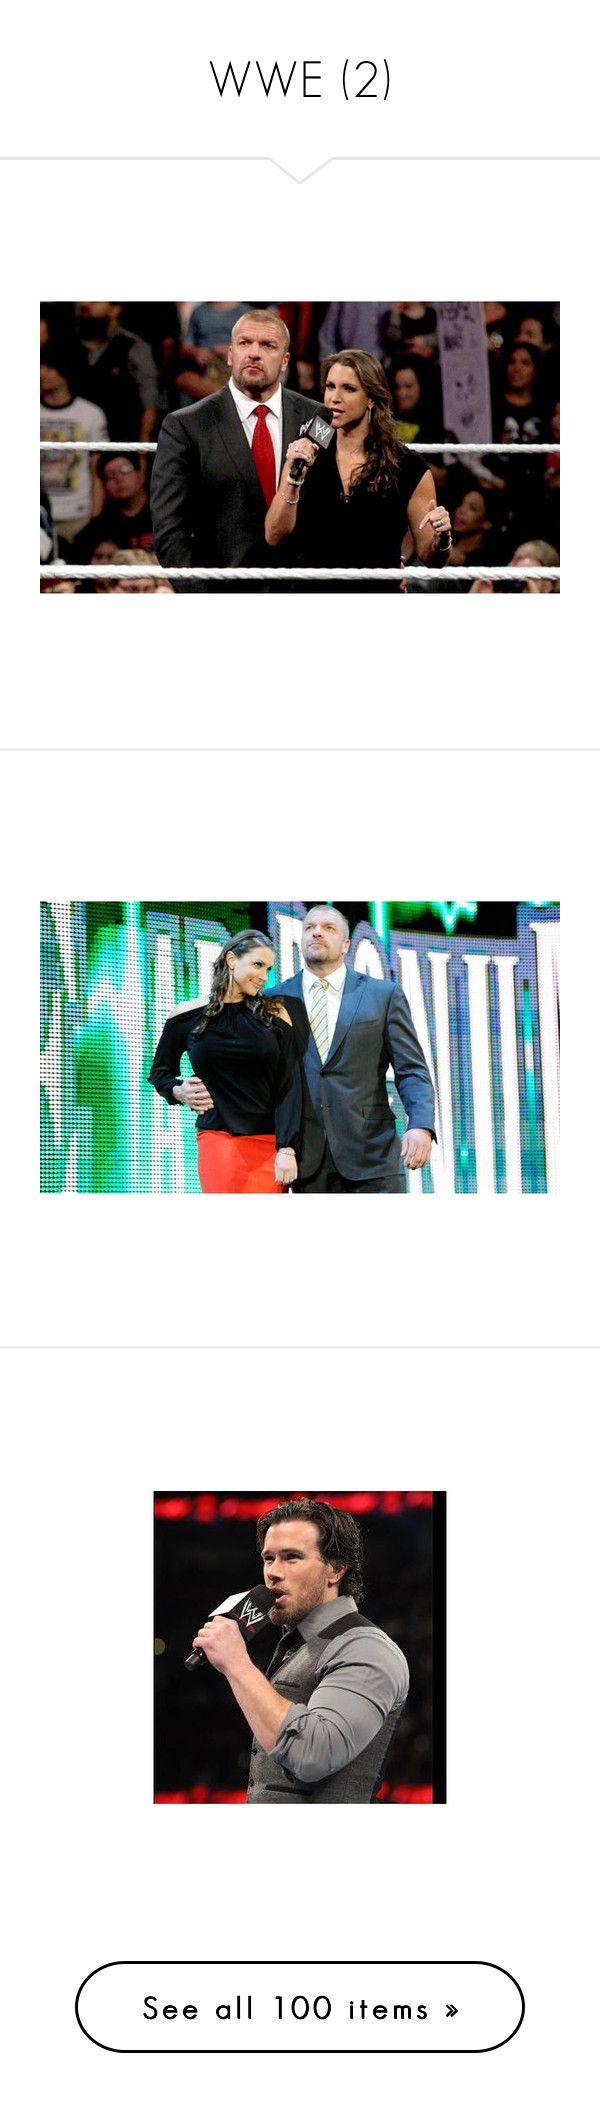 """""""WWE (2)"""" by imblissedoff ❤ liked on Polyvore featuring wwe, pictures, home, home decor, roman reigns, & - wwe, kane, paige, corey graves and dean ambrose"""